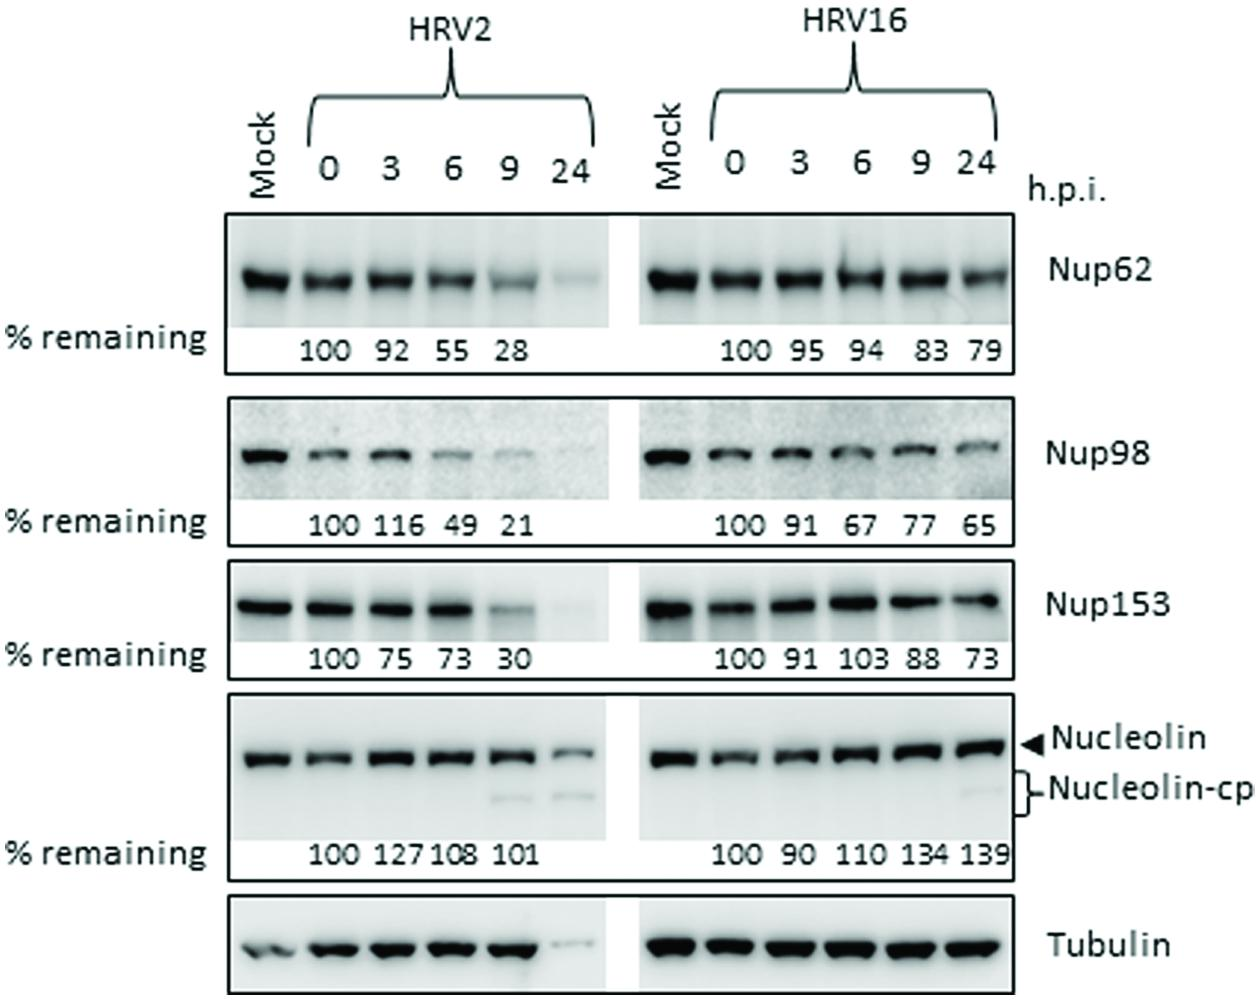 Frontiers Variation In The Nuclear Effects Of Infection By Different Human Rhinovirus Serotypes Microbiology